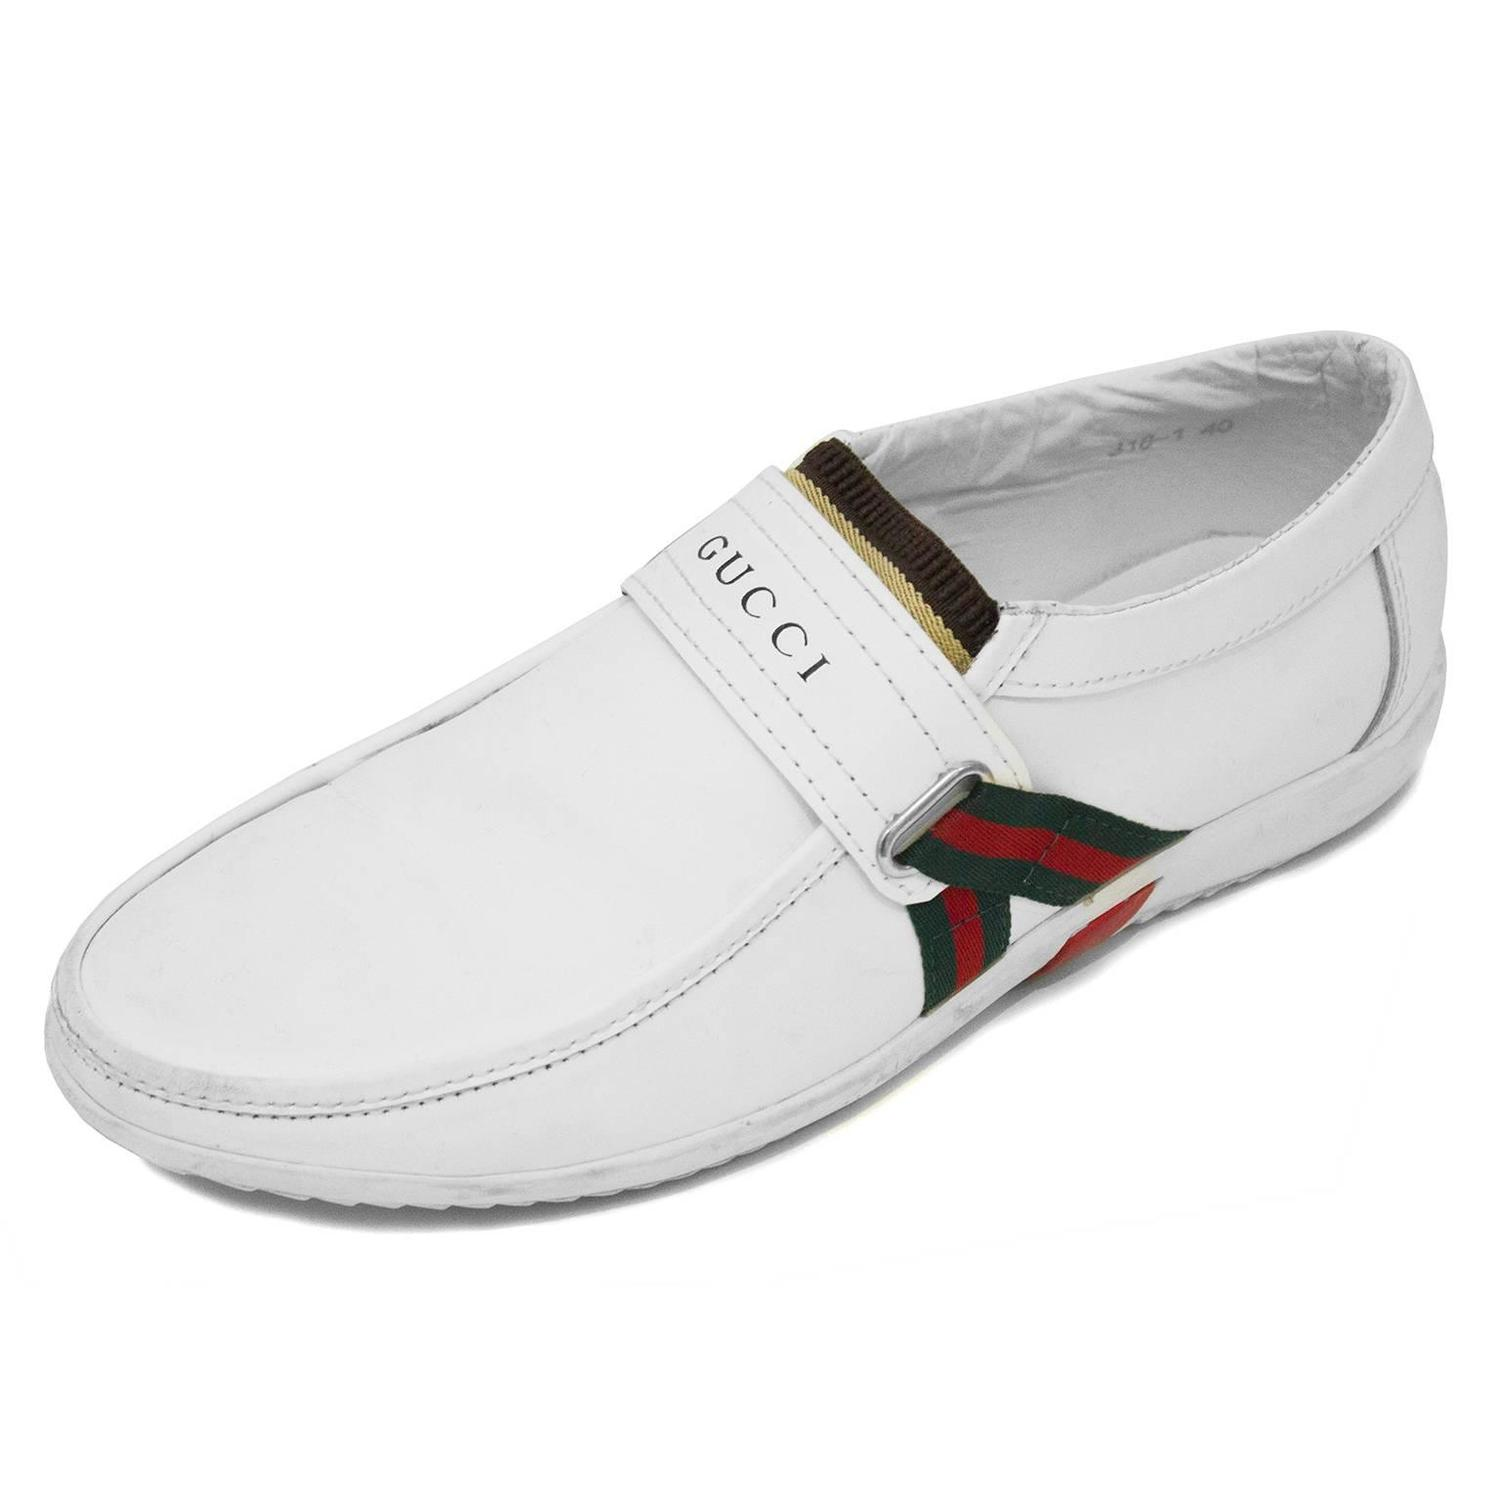 Lyst - Gucci New Ace Web Leather & Camain Sneakers in ... |White Gucci Dress Shoes For Men